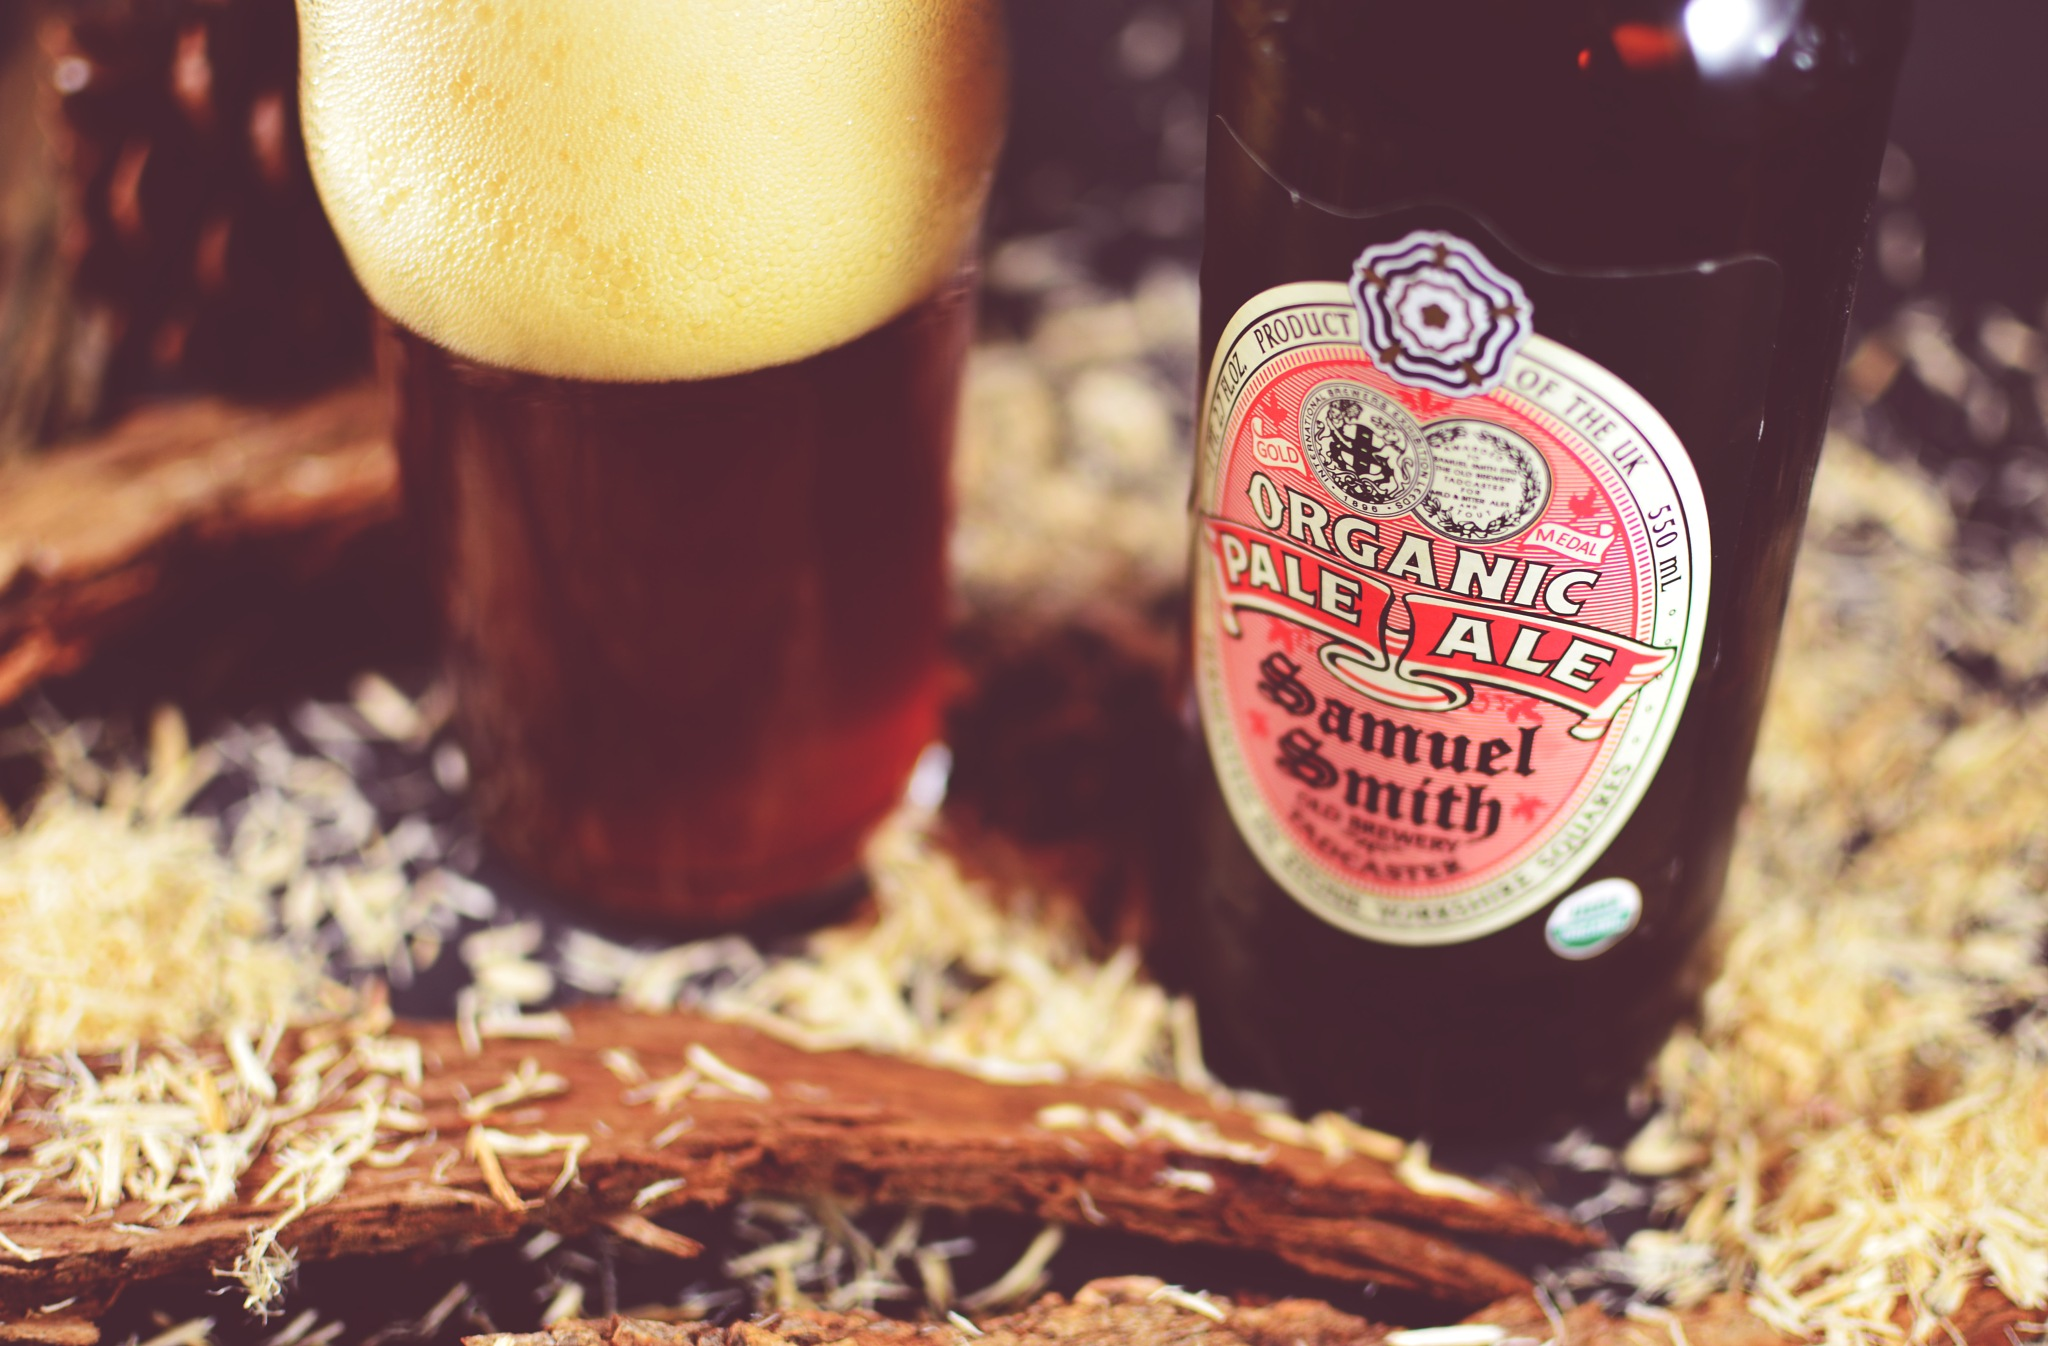 Organic Pale Ale Beer (Samuel Smith) by Yauheni Loktseu